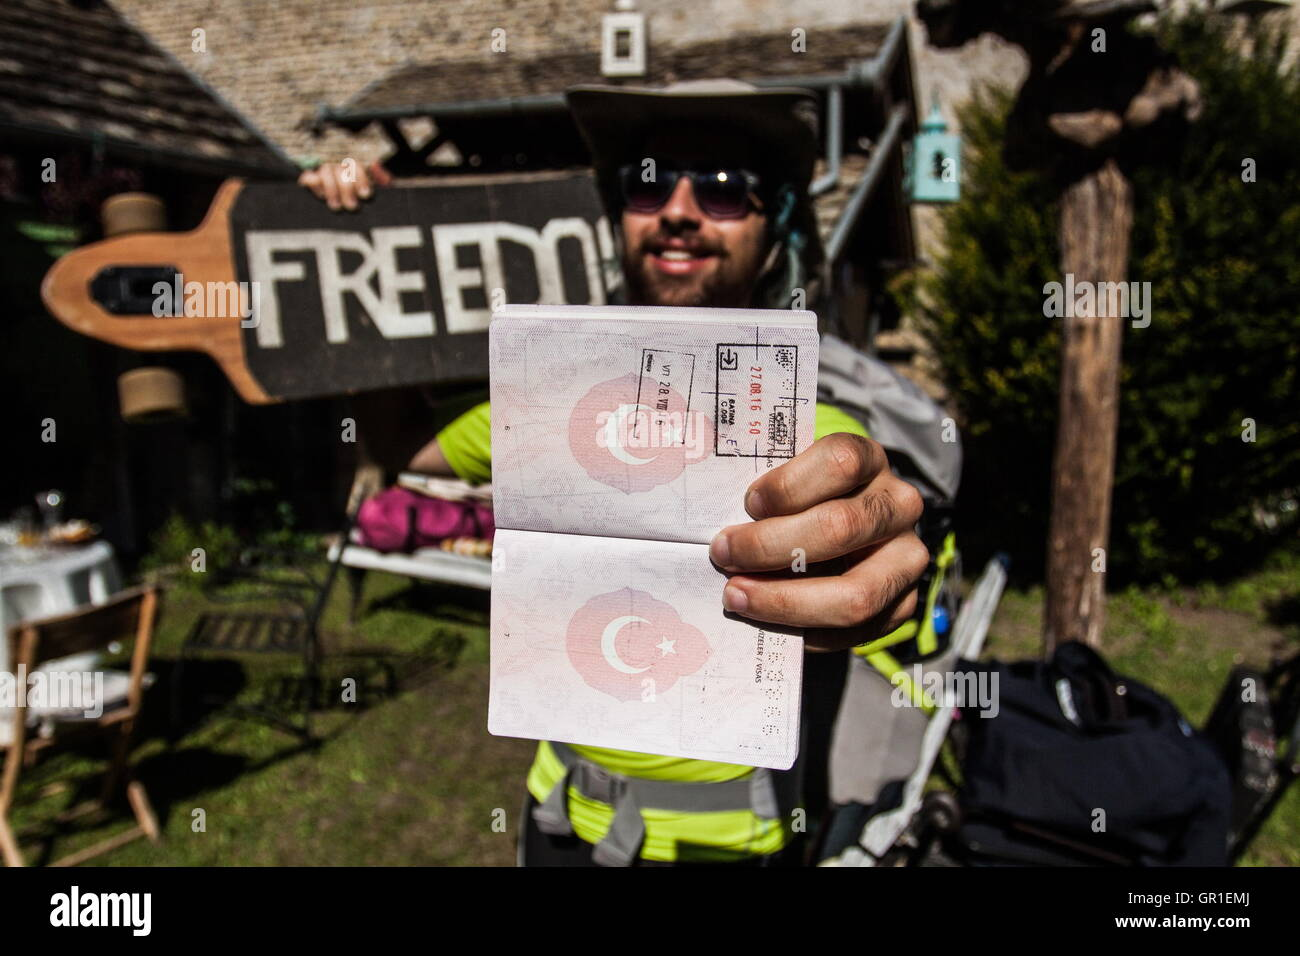 Aug 29, 2016 - Liberland - Man from Turkey who came to Serbia from Amsterdam by a longboard only. He get denied - Stock Image